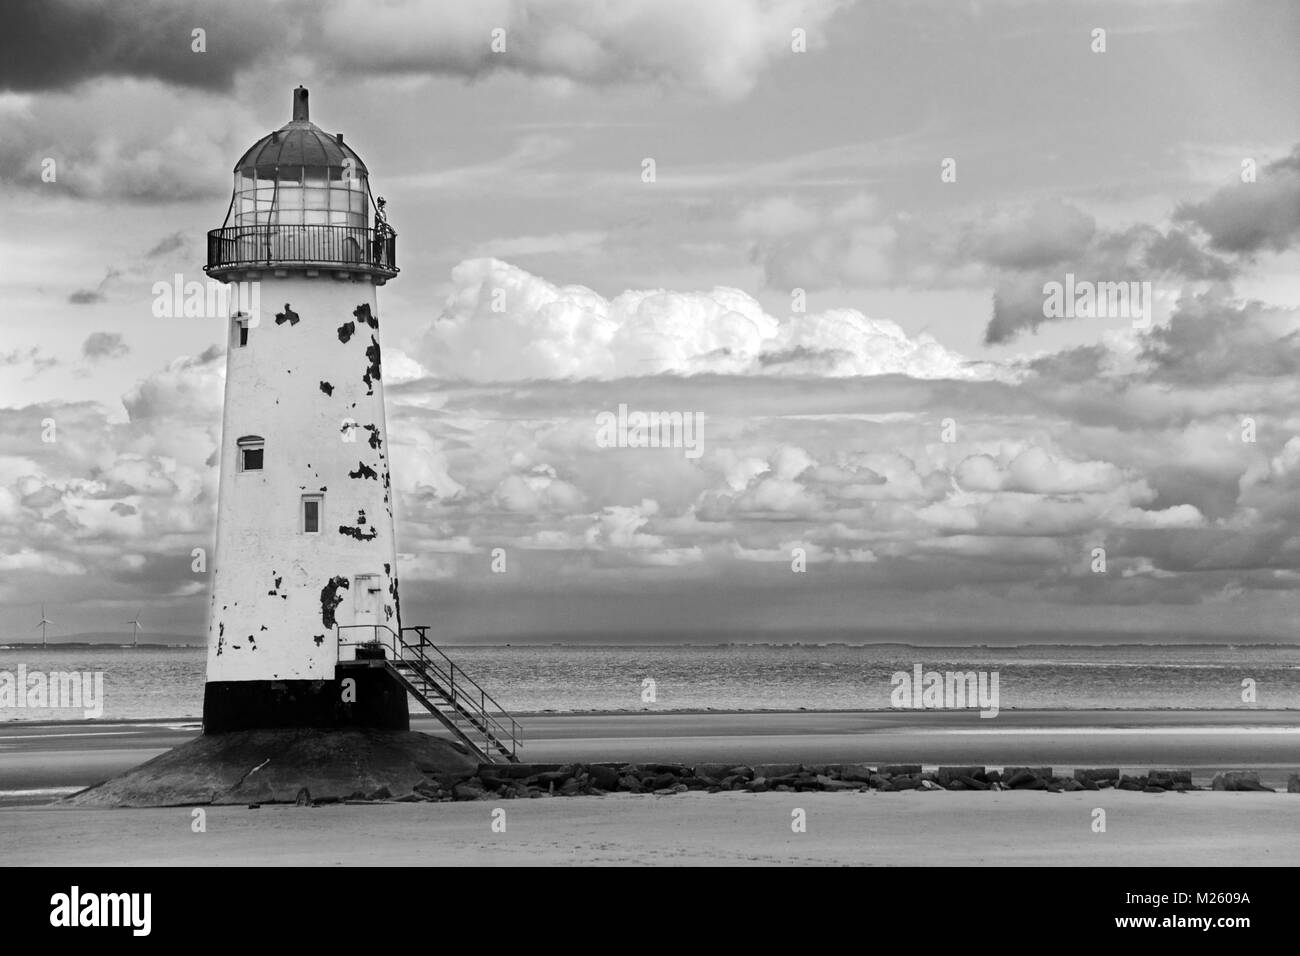 Point of Ayr Lighthouse stands at the mouth of the Dee Estuary in Wales near Talacre village. It was built in 1776 - Stock Image